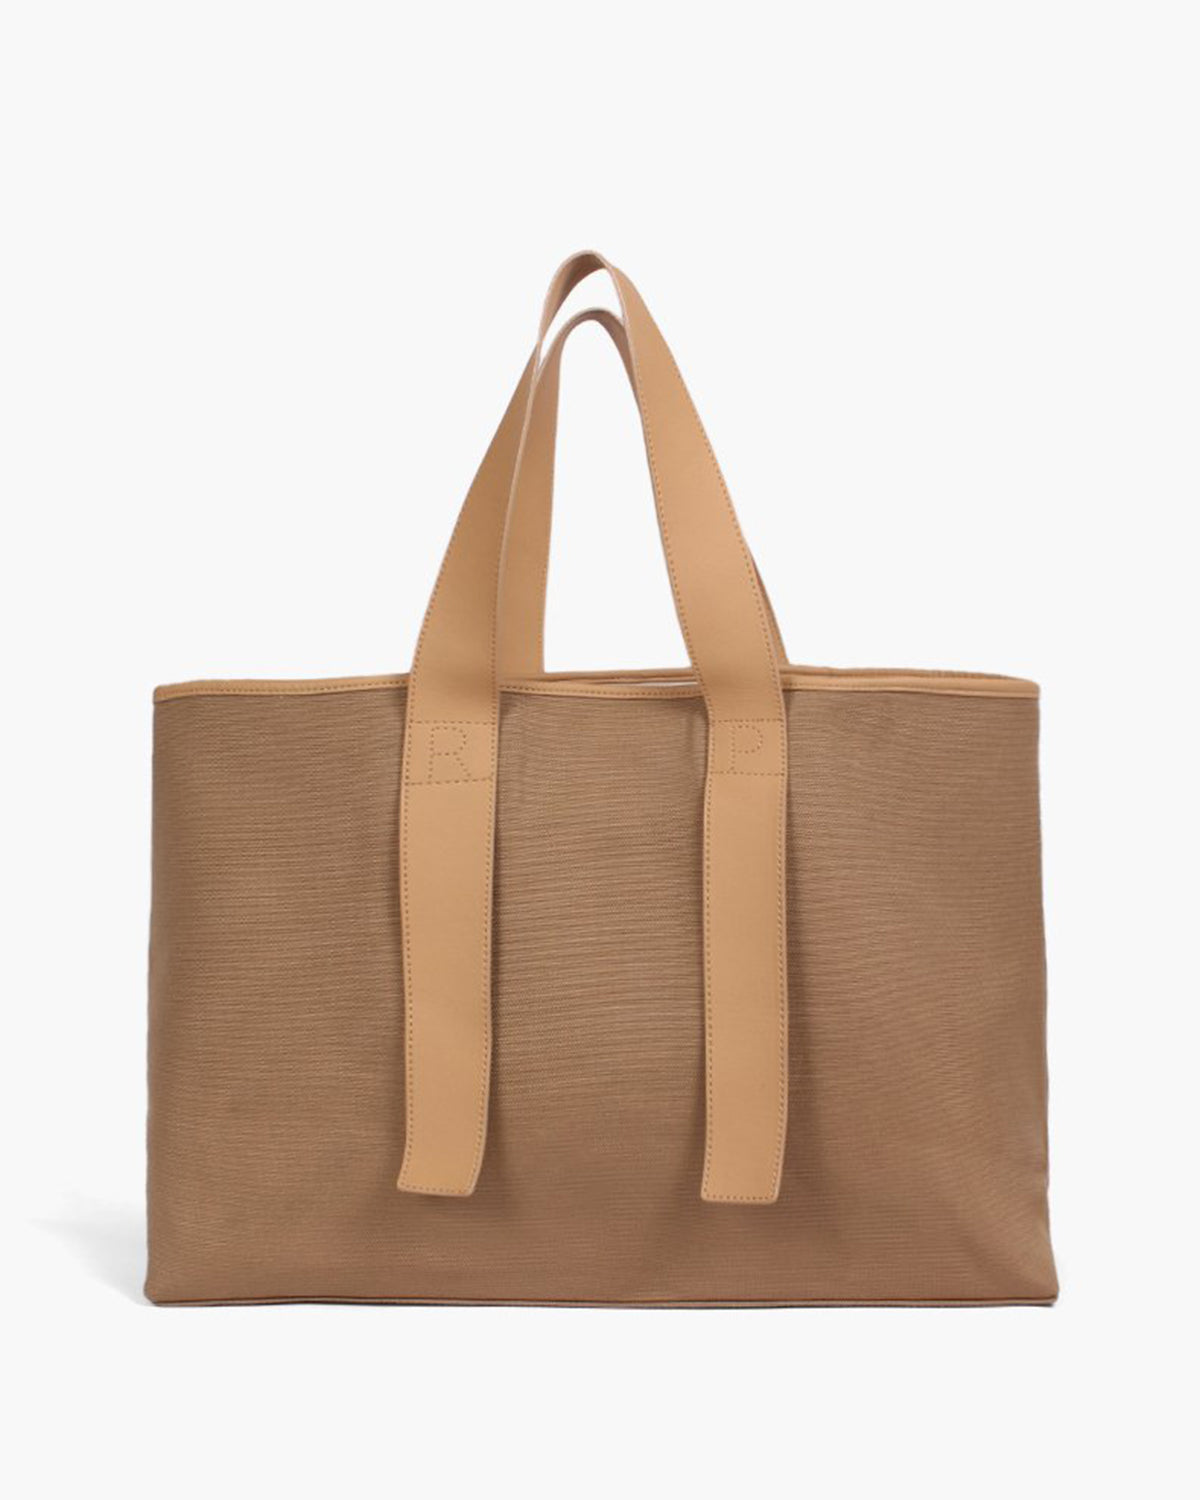 Carter Tote Canvas Natural